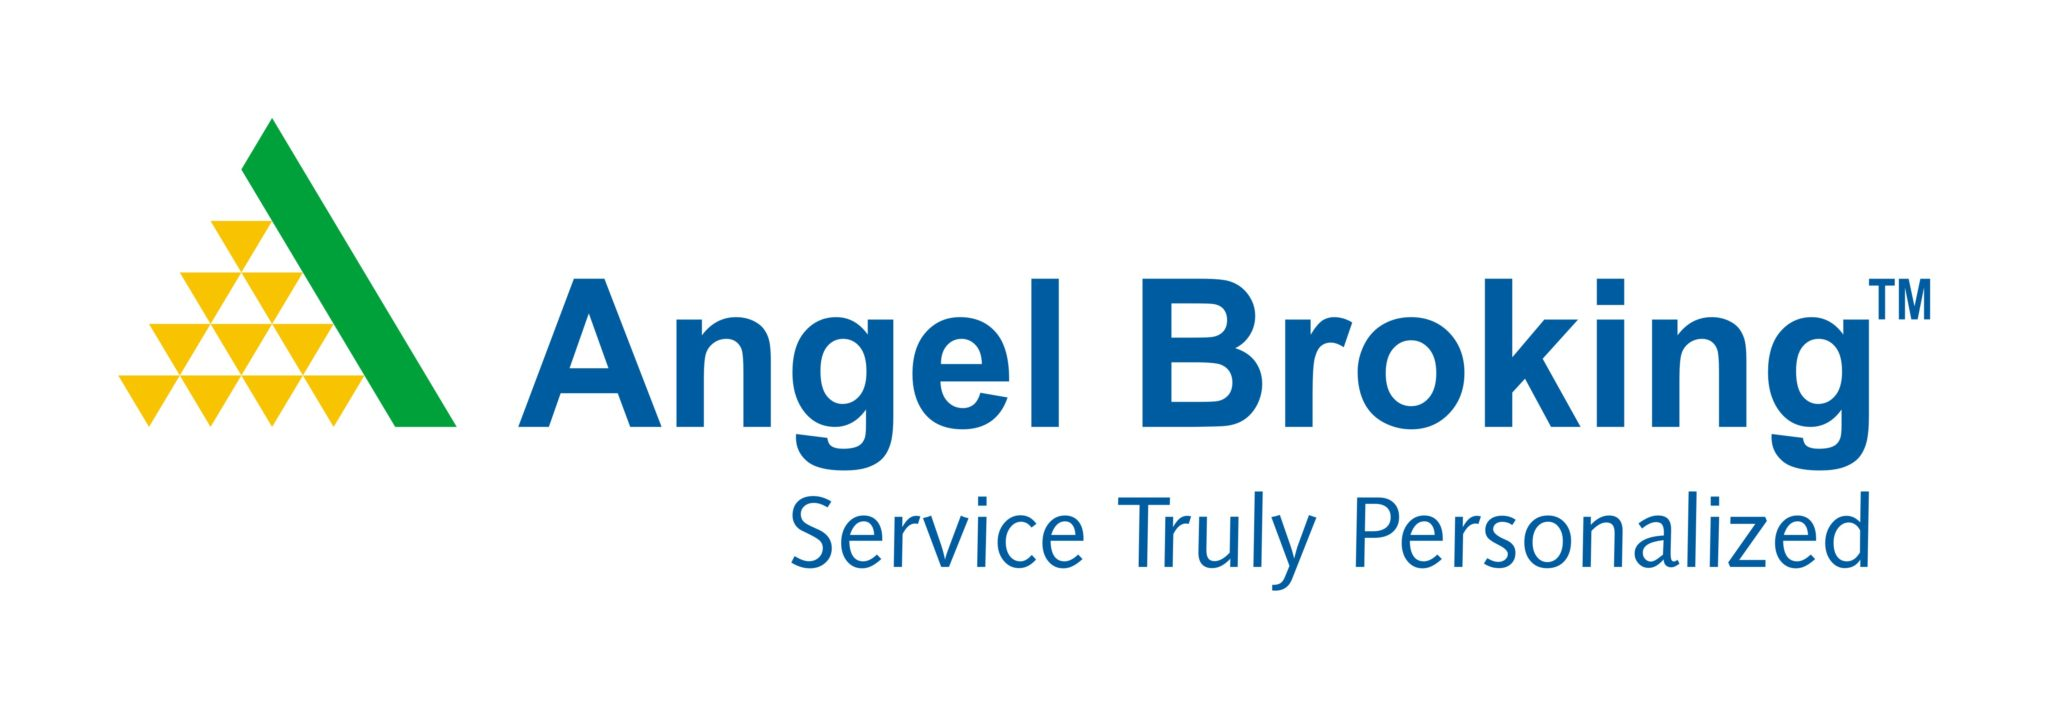 Angel Broking Full Service Brokers